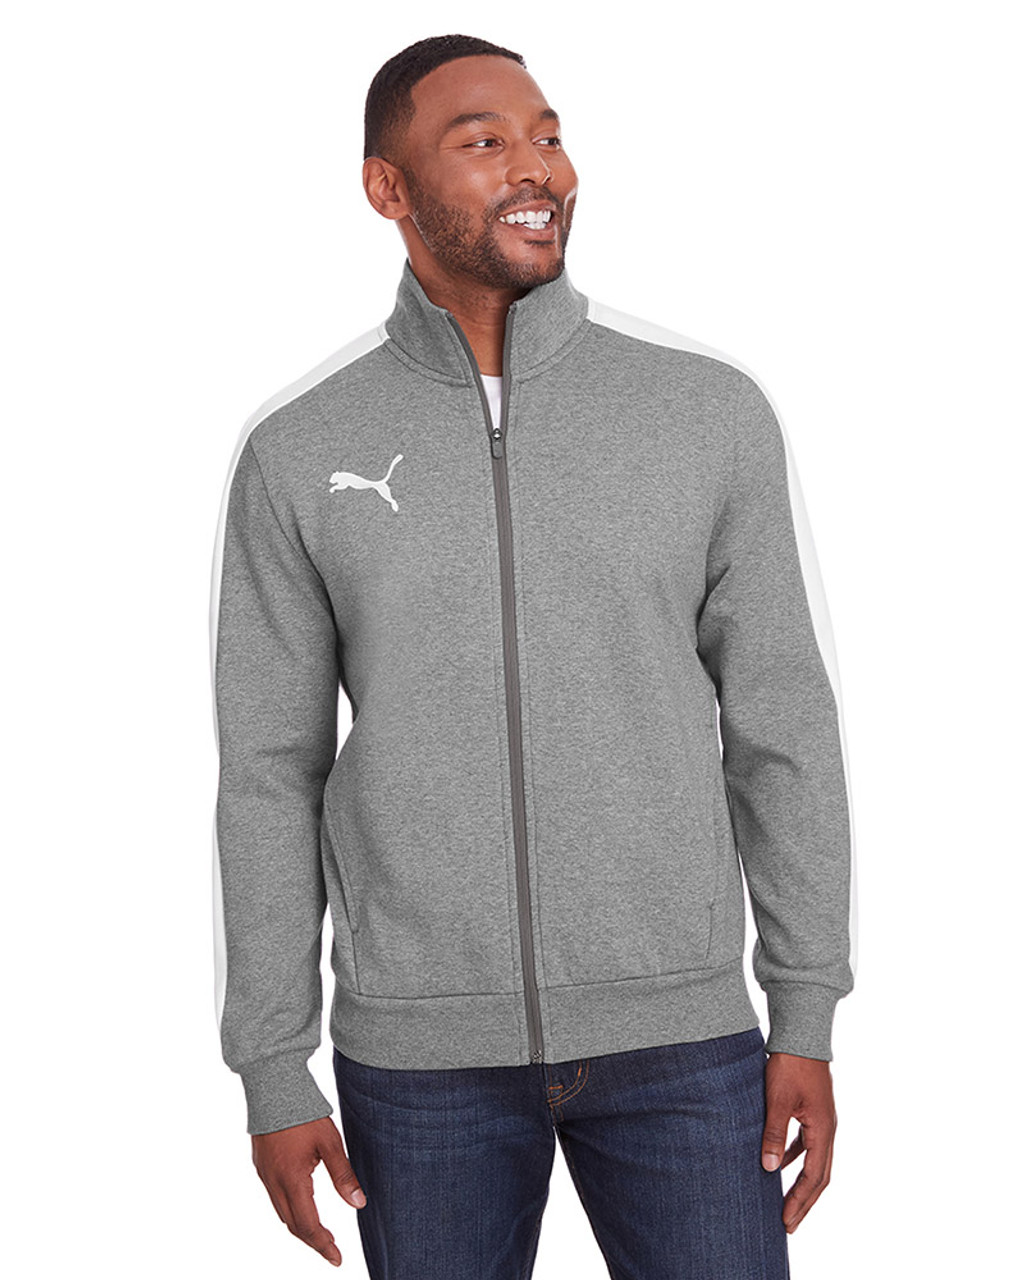 Midnight Grey Heather/Puma White - 597021 Puma Sport Adult P48 Fleece Track Jacket | Blankclothing.ca